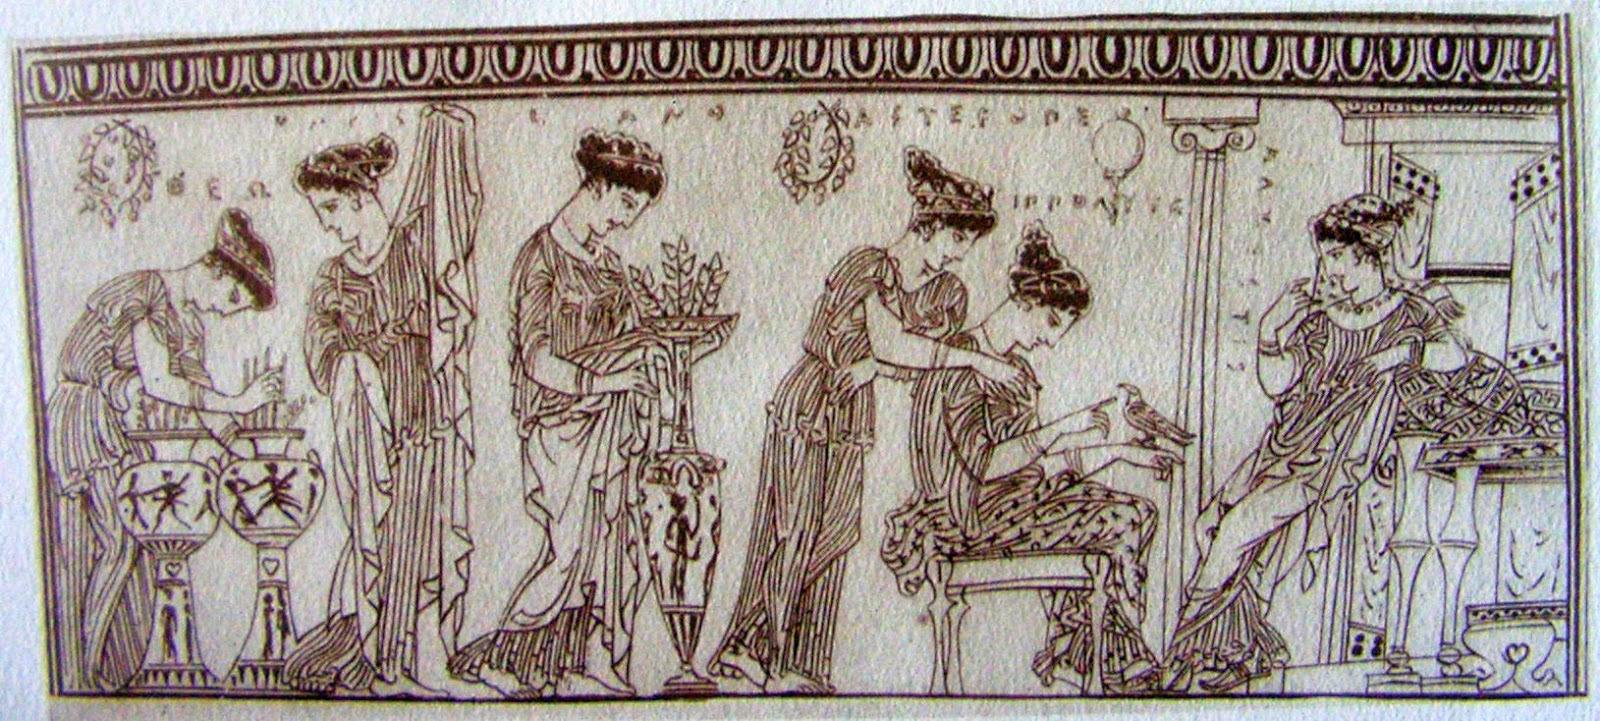 Ancient greece furniture - Furniture During This Time Was Made With Copper Bronze Iron Marble And Wood And Was Often Inlaid With Gold Ivory And Gems